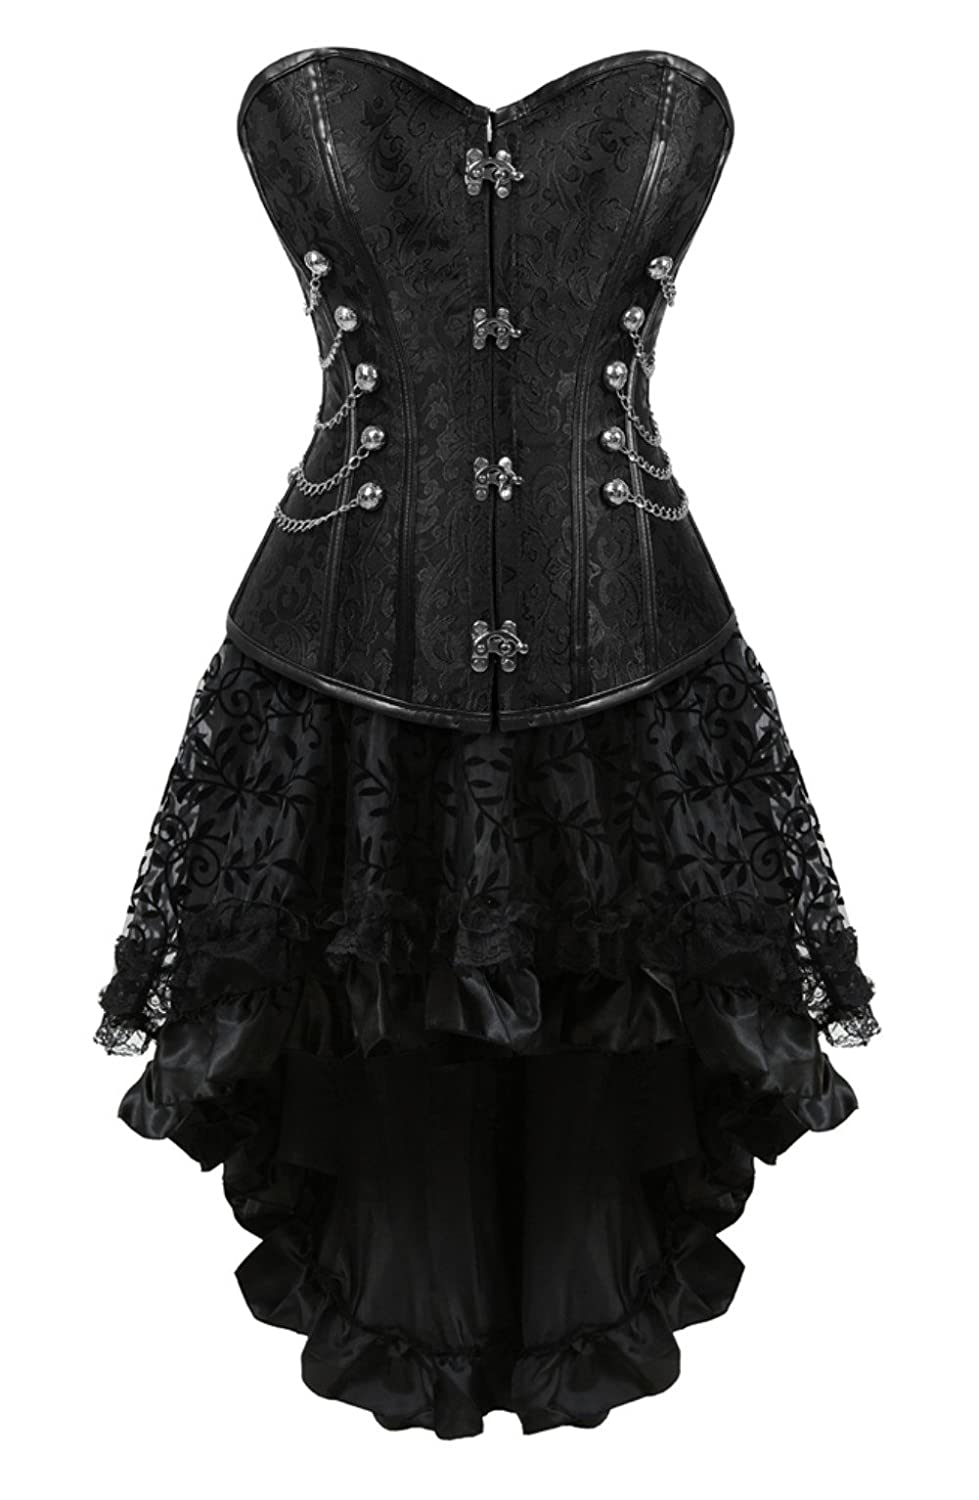 Steampunk Corsets & Belts | Underbust, Overbust Grebrafan Steampunk Corset Skirt with ZipperMulti Layered High Low Outfits $51.99 AT vintagedancer.com